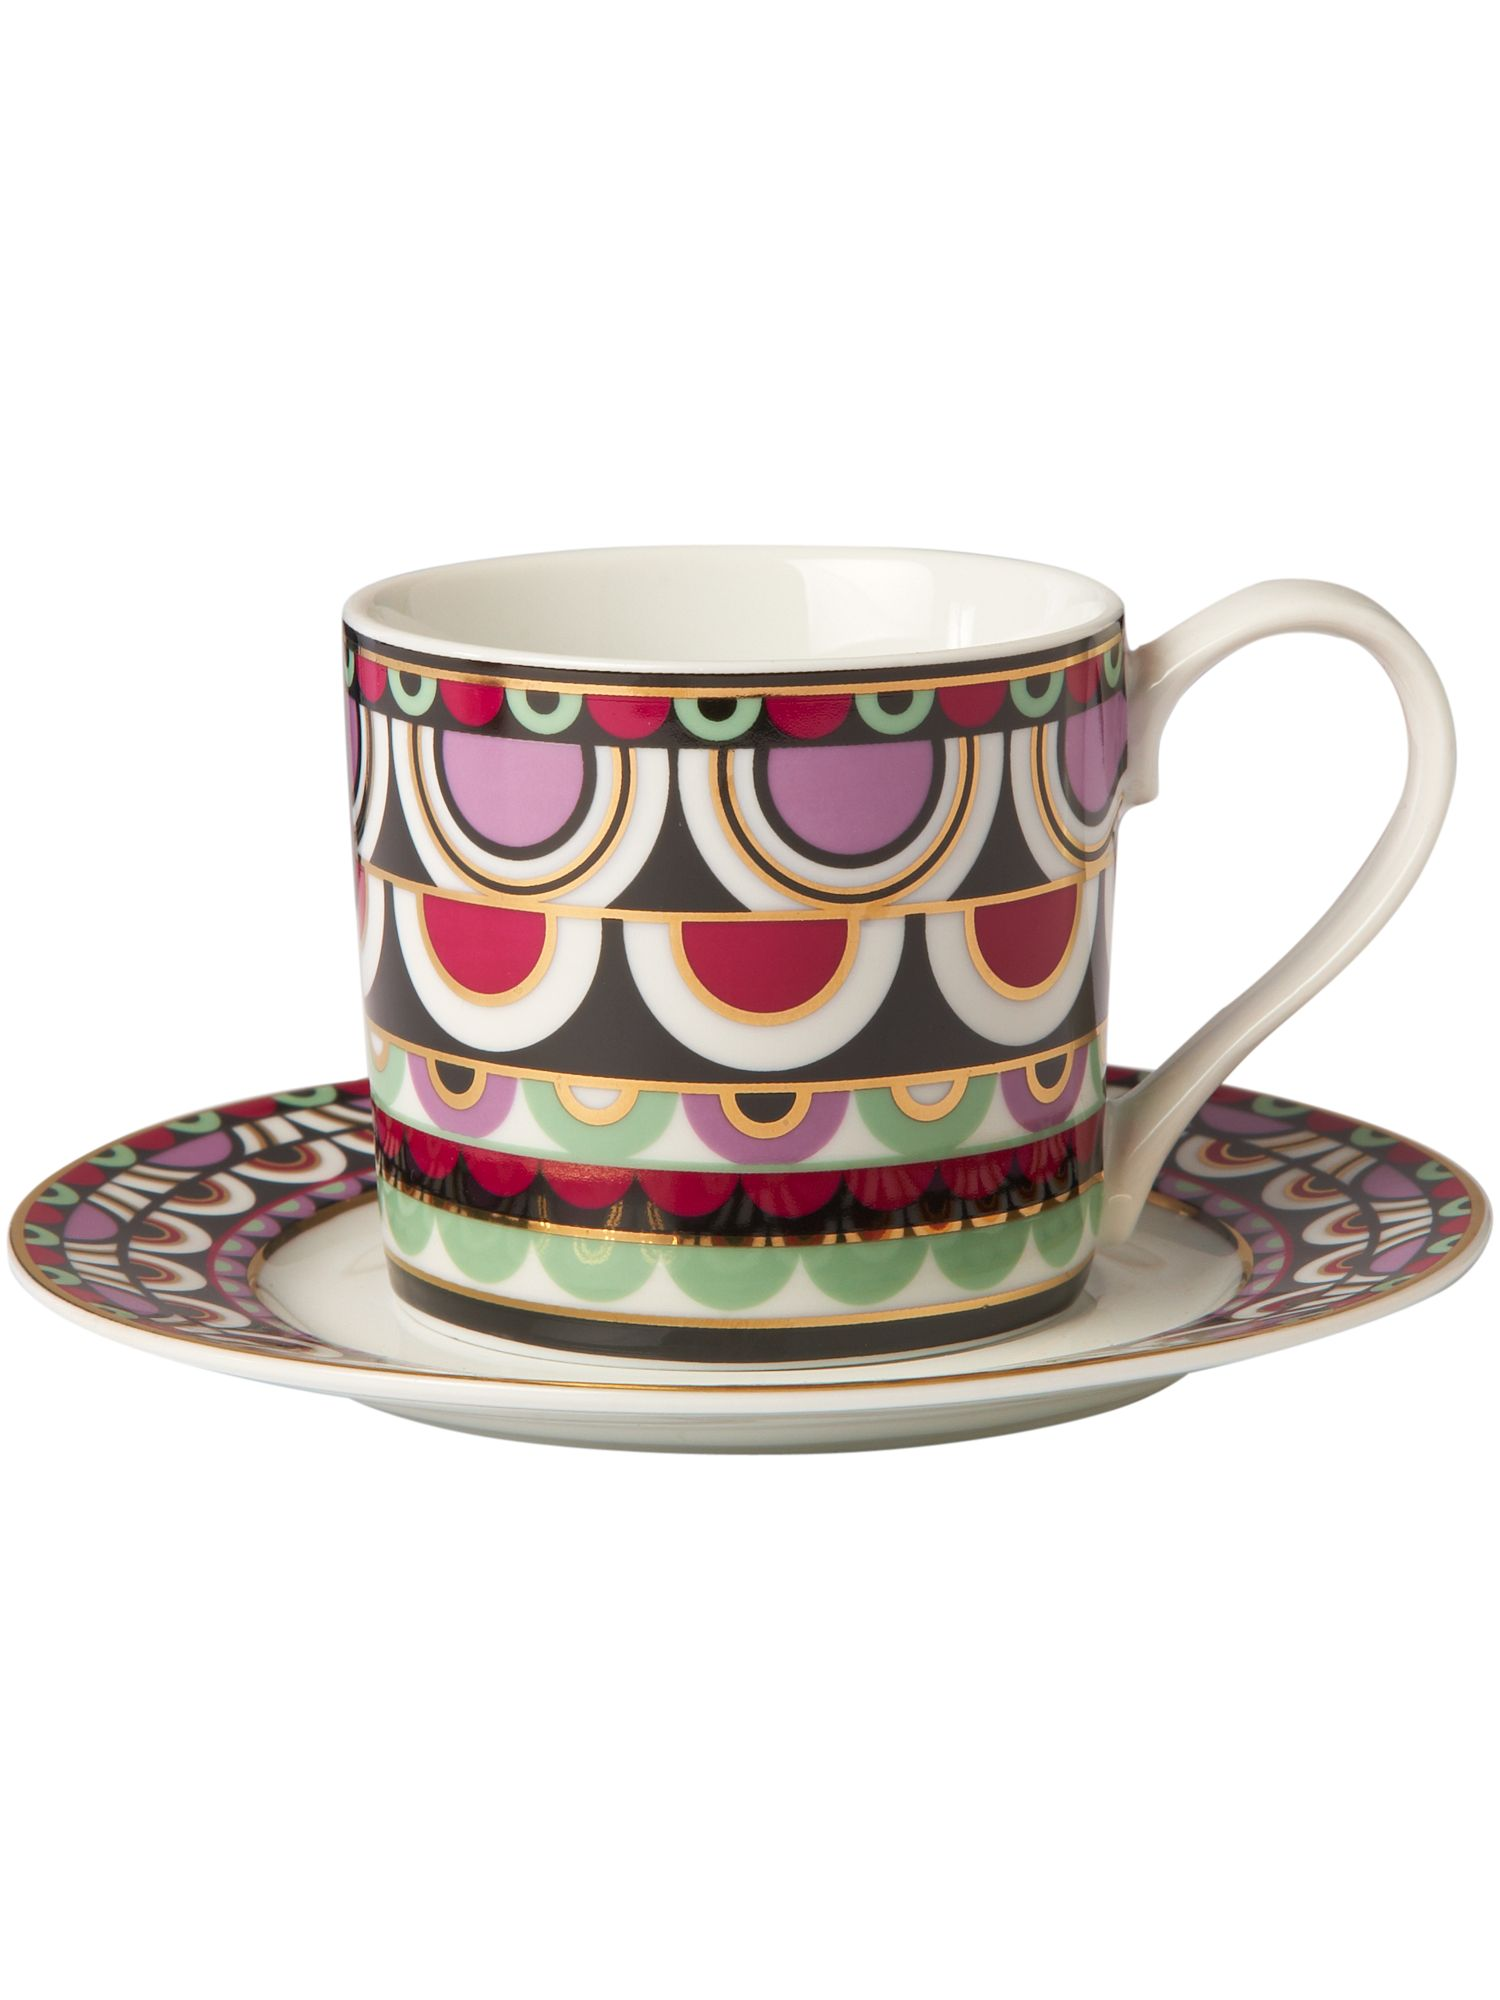 Persia Jewels cup and saucer